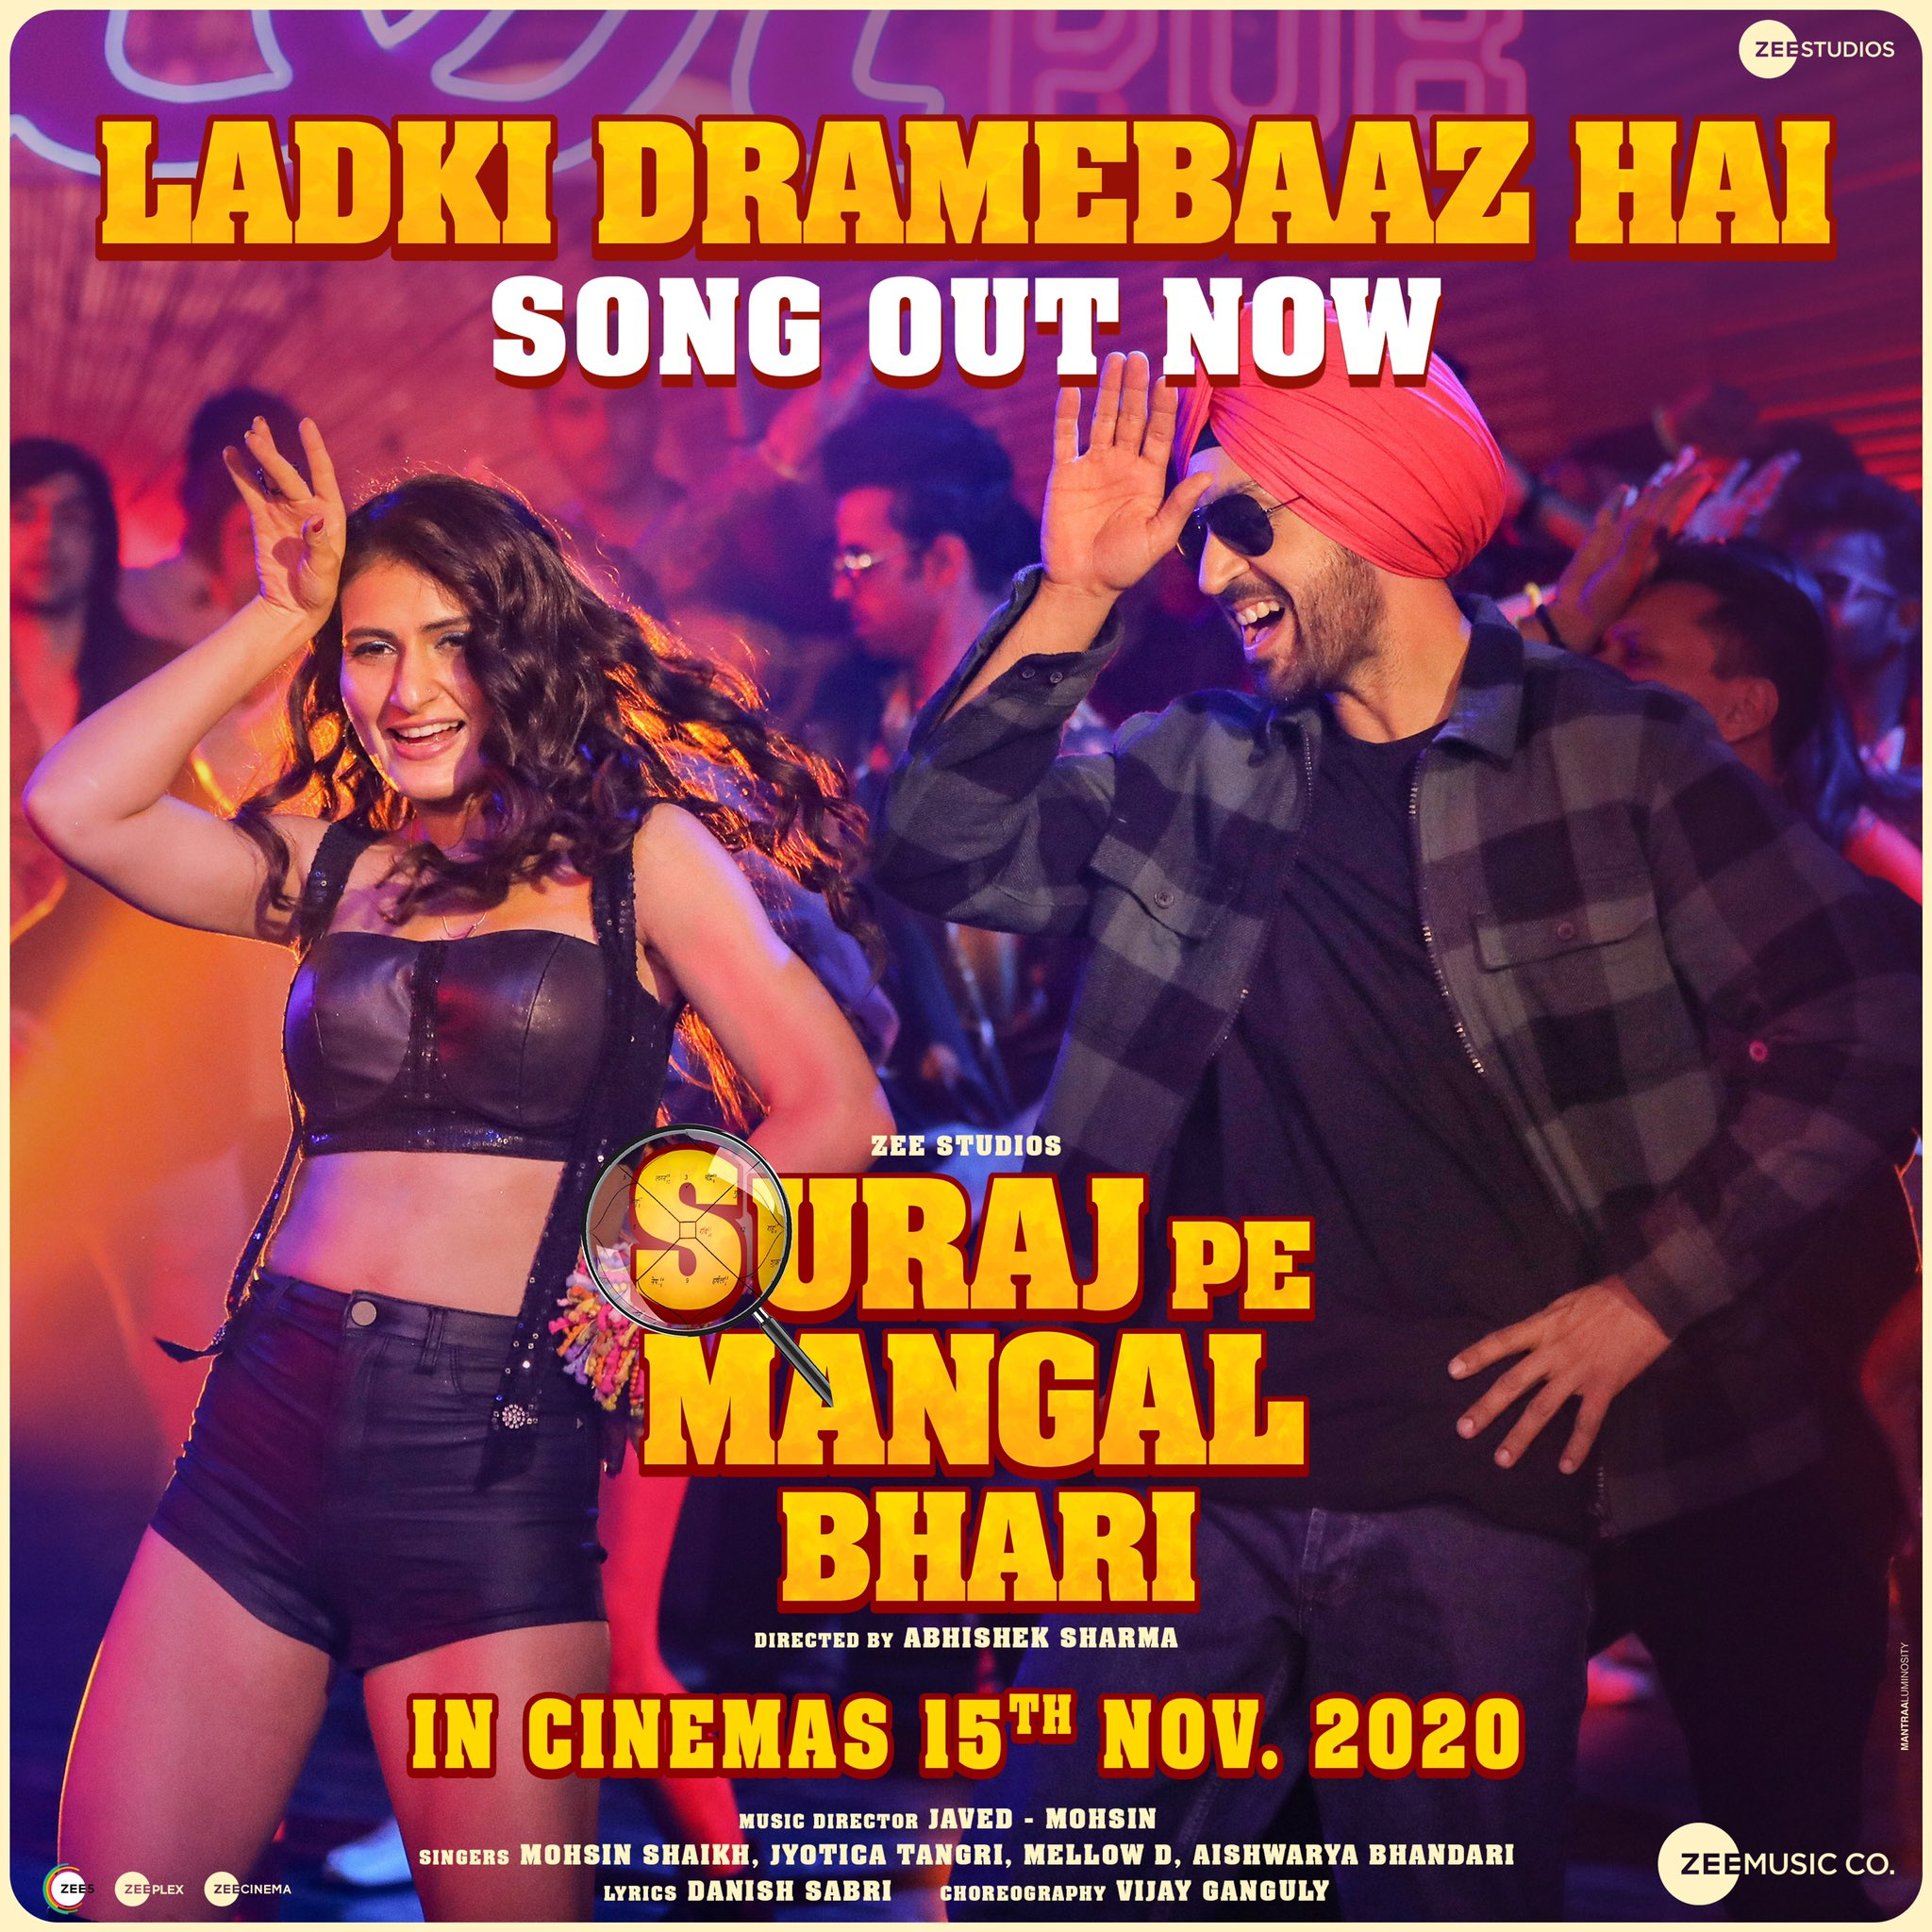 Ladki Dramebaaz Hai (Suraj Pe Mangal Bhari 2020) Hindi Video Song 1080p HDRip Download